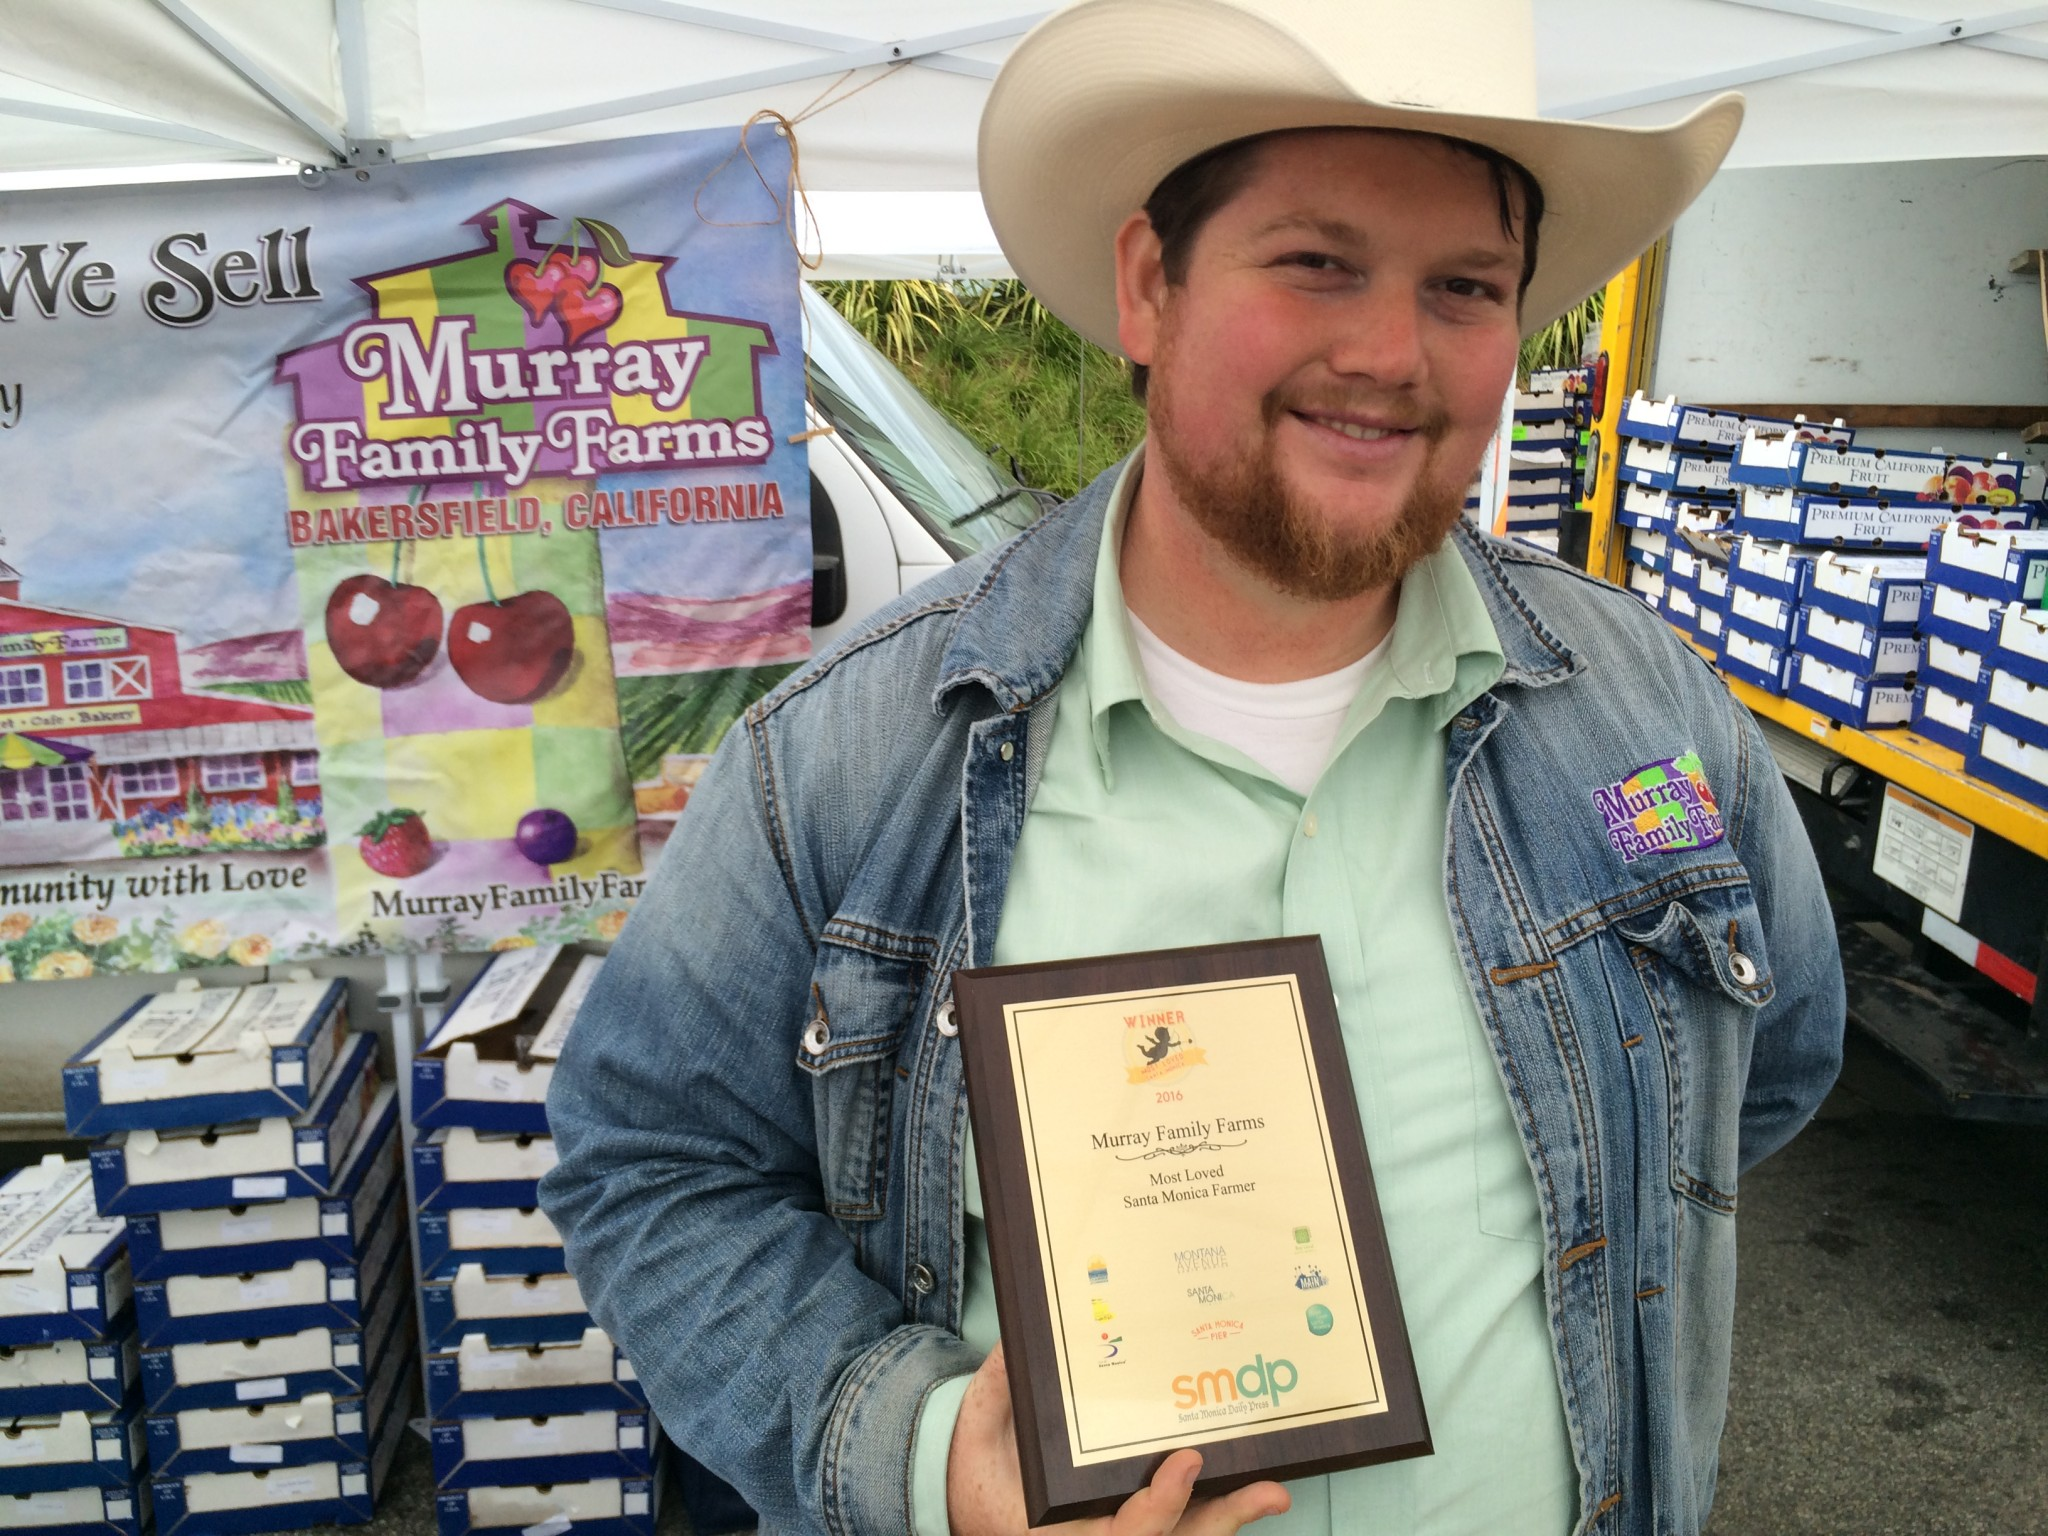 Steven Murray  From Bakersfield California Organic Produce and Family fun events.jpg